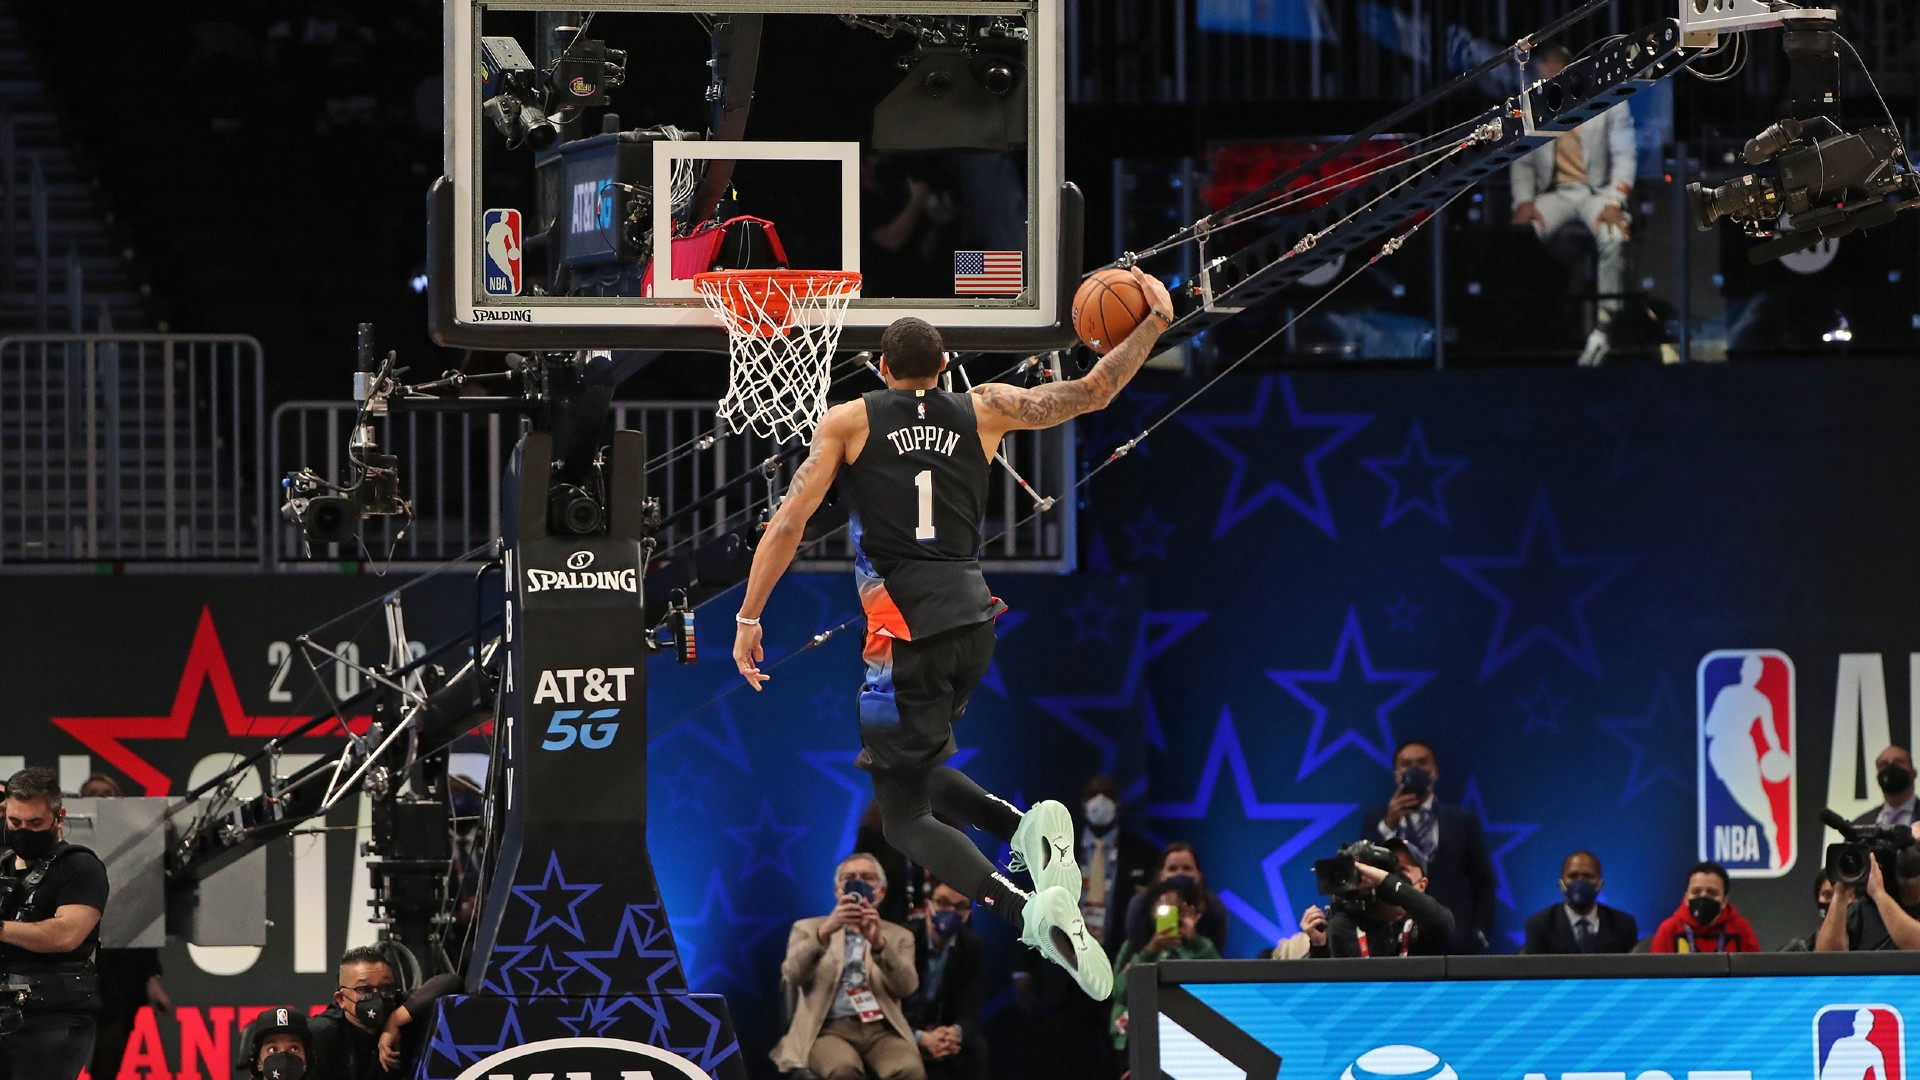 AT&T Slam Dunk Contest results in $80,000 donation to York College